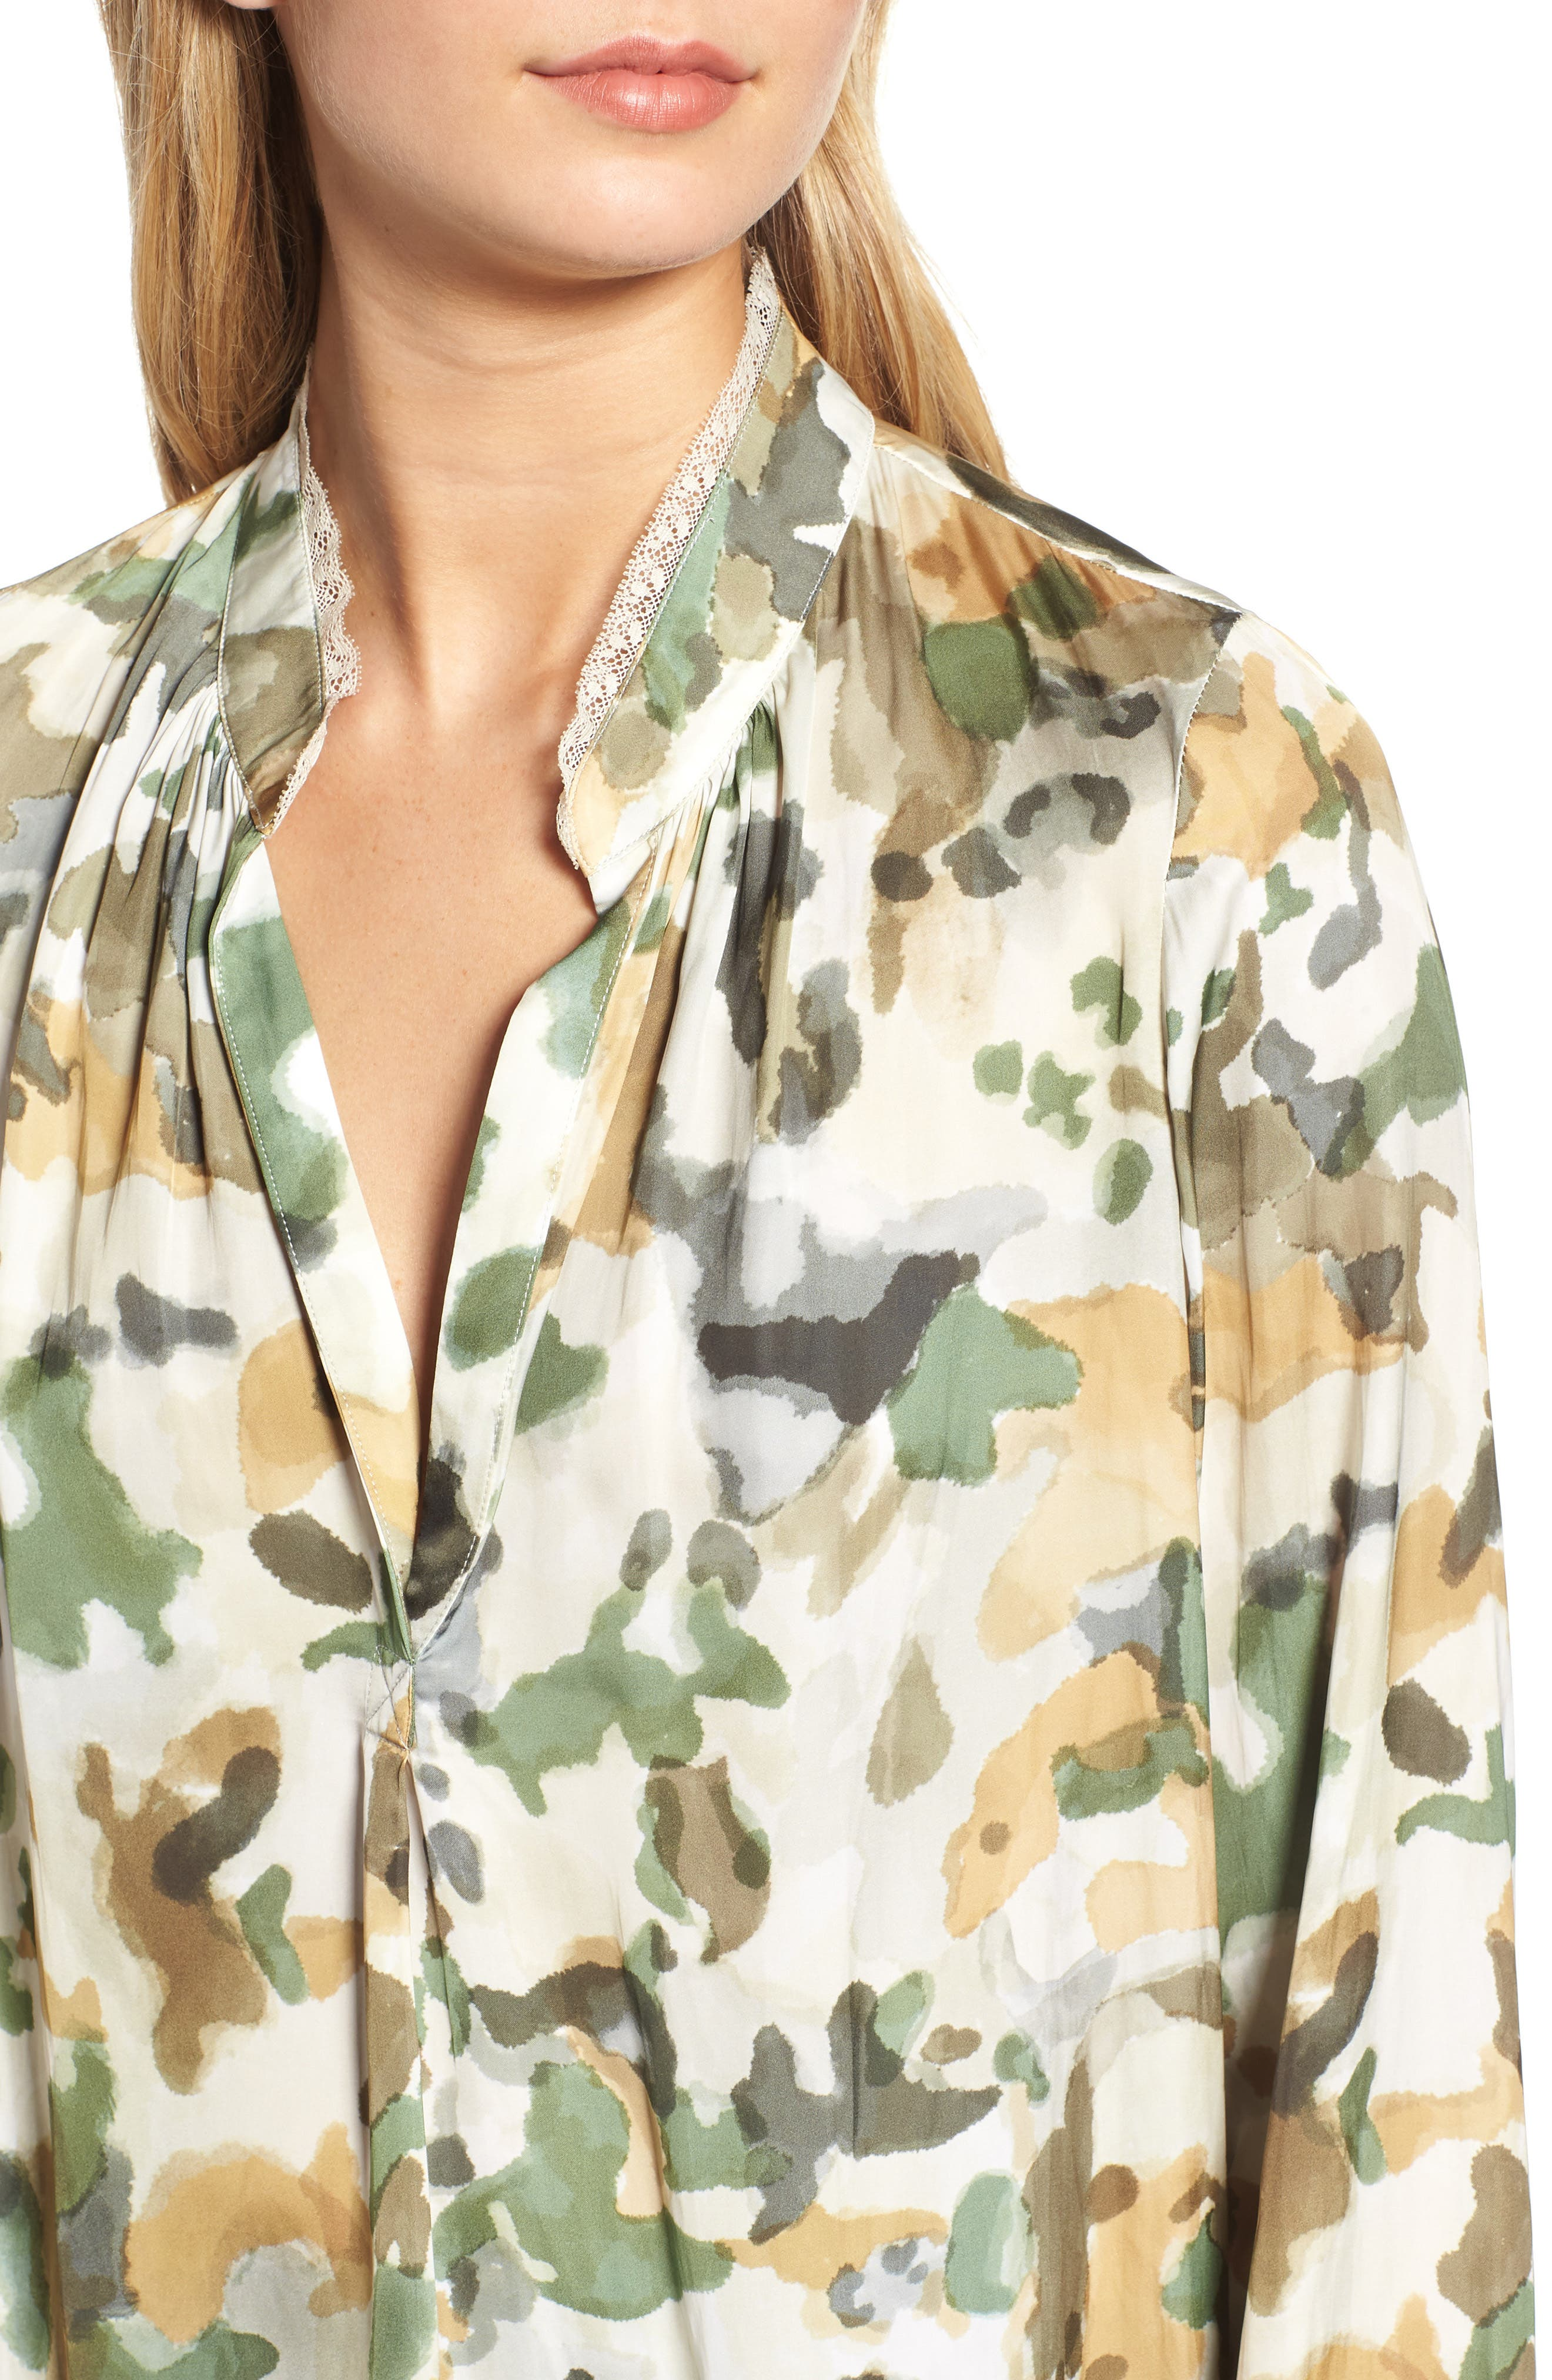 Tink Camouflage Top,                             Alternate thumbnail 4, color,                             BEIGE